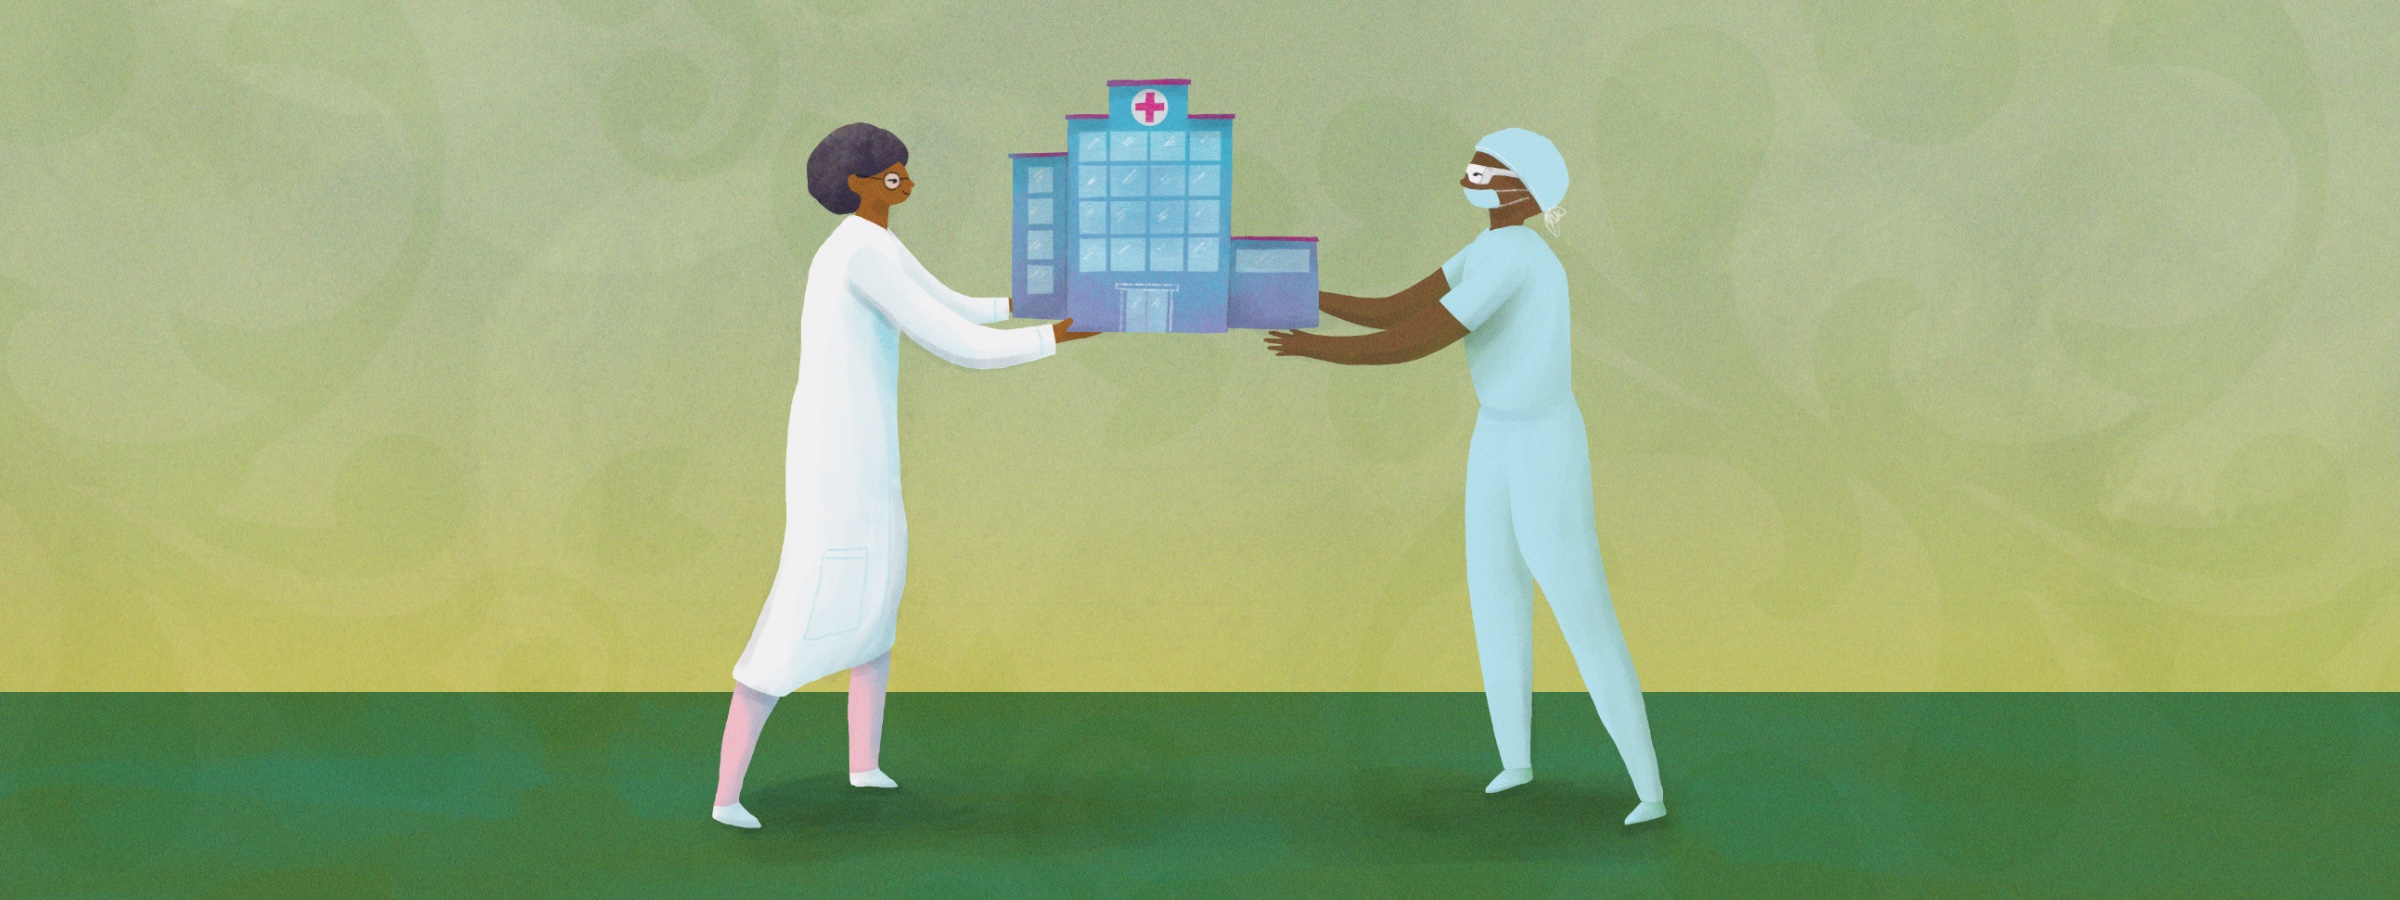 illustration of two providers holding a miniature hospital building